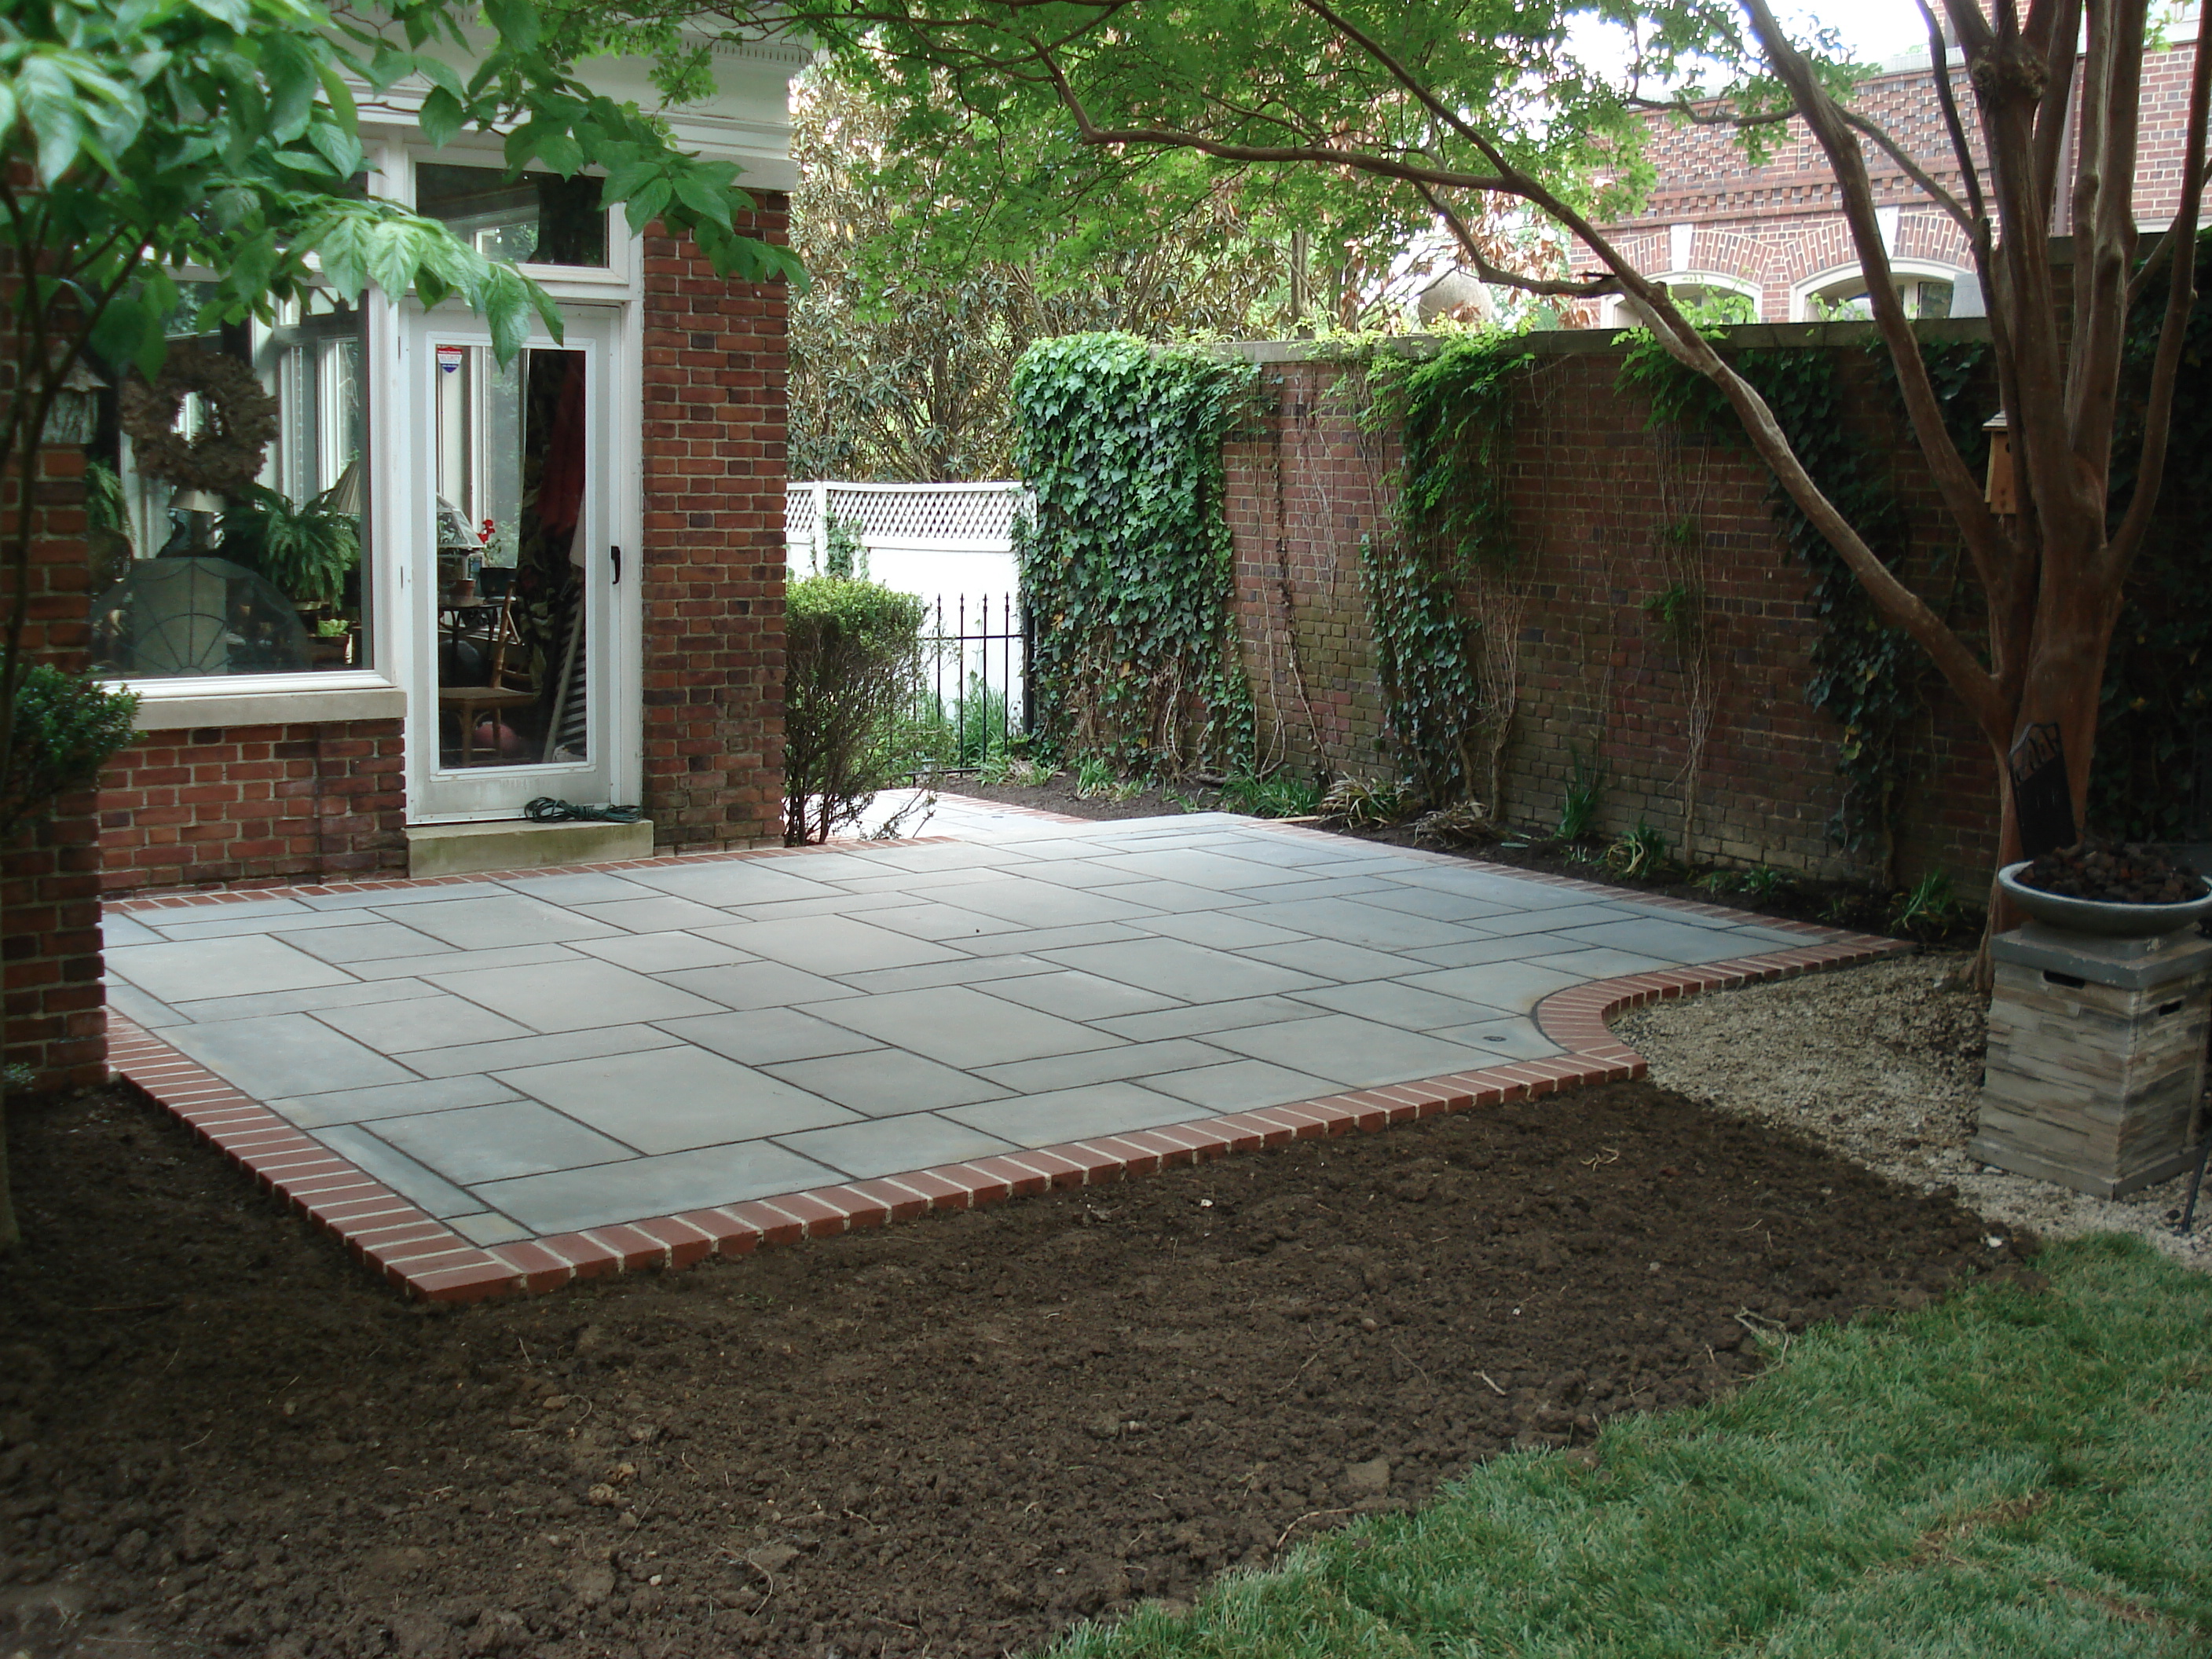 Blue Stone Patio With Brick Edge Course